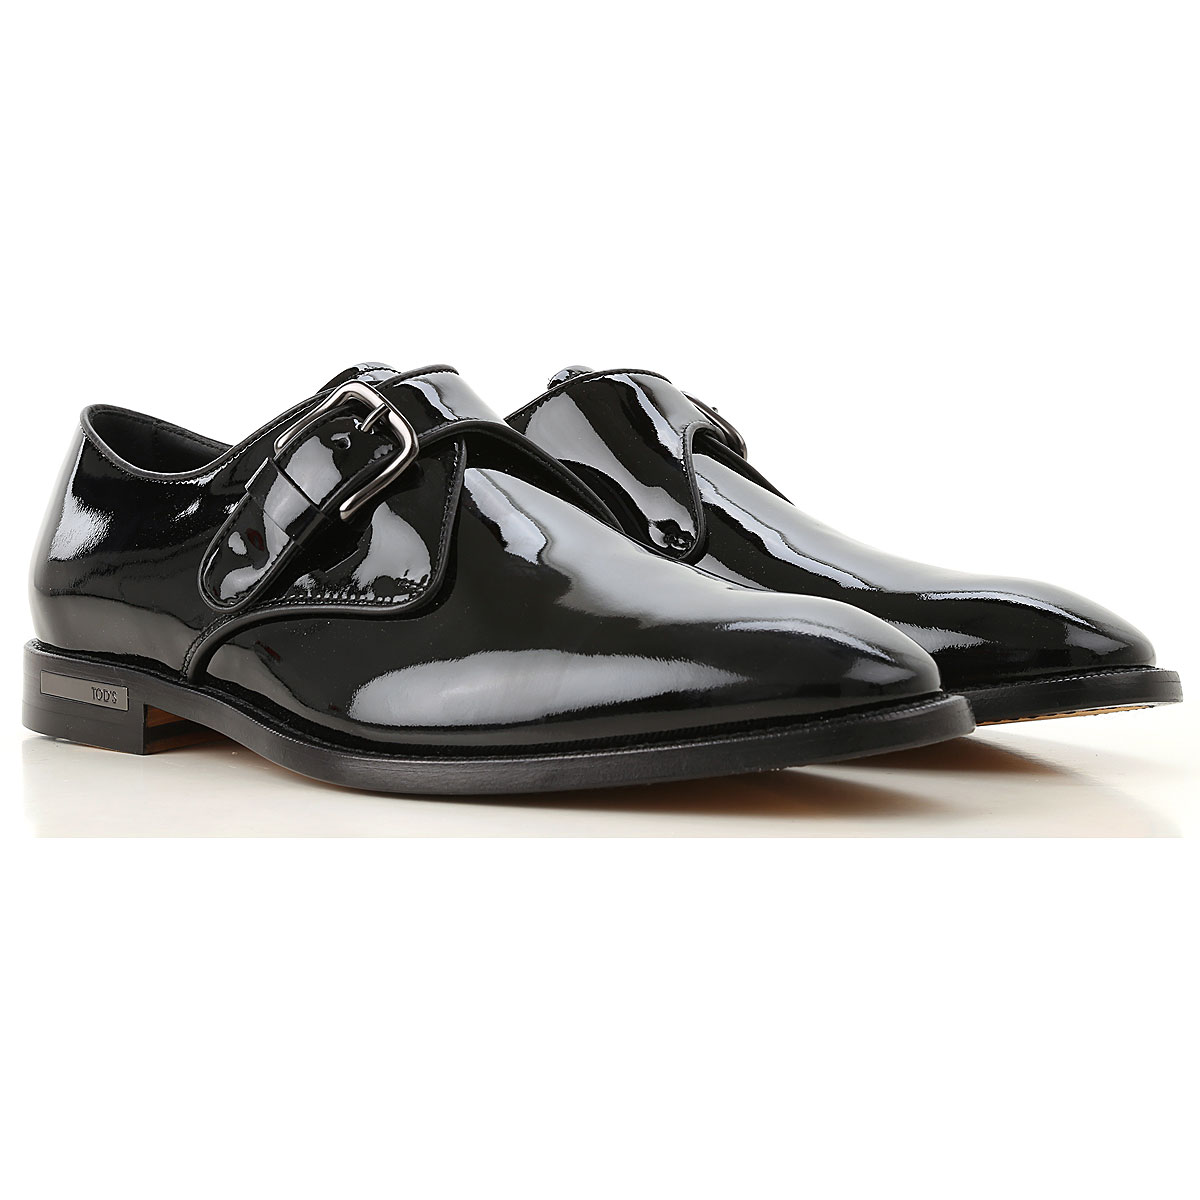 Image of Tods Oxford Shoes for Men, Black, Patent Leather, 2017, 7.5 8.5 9.5